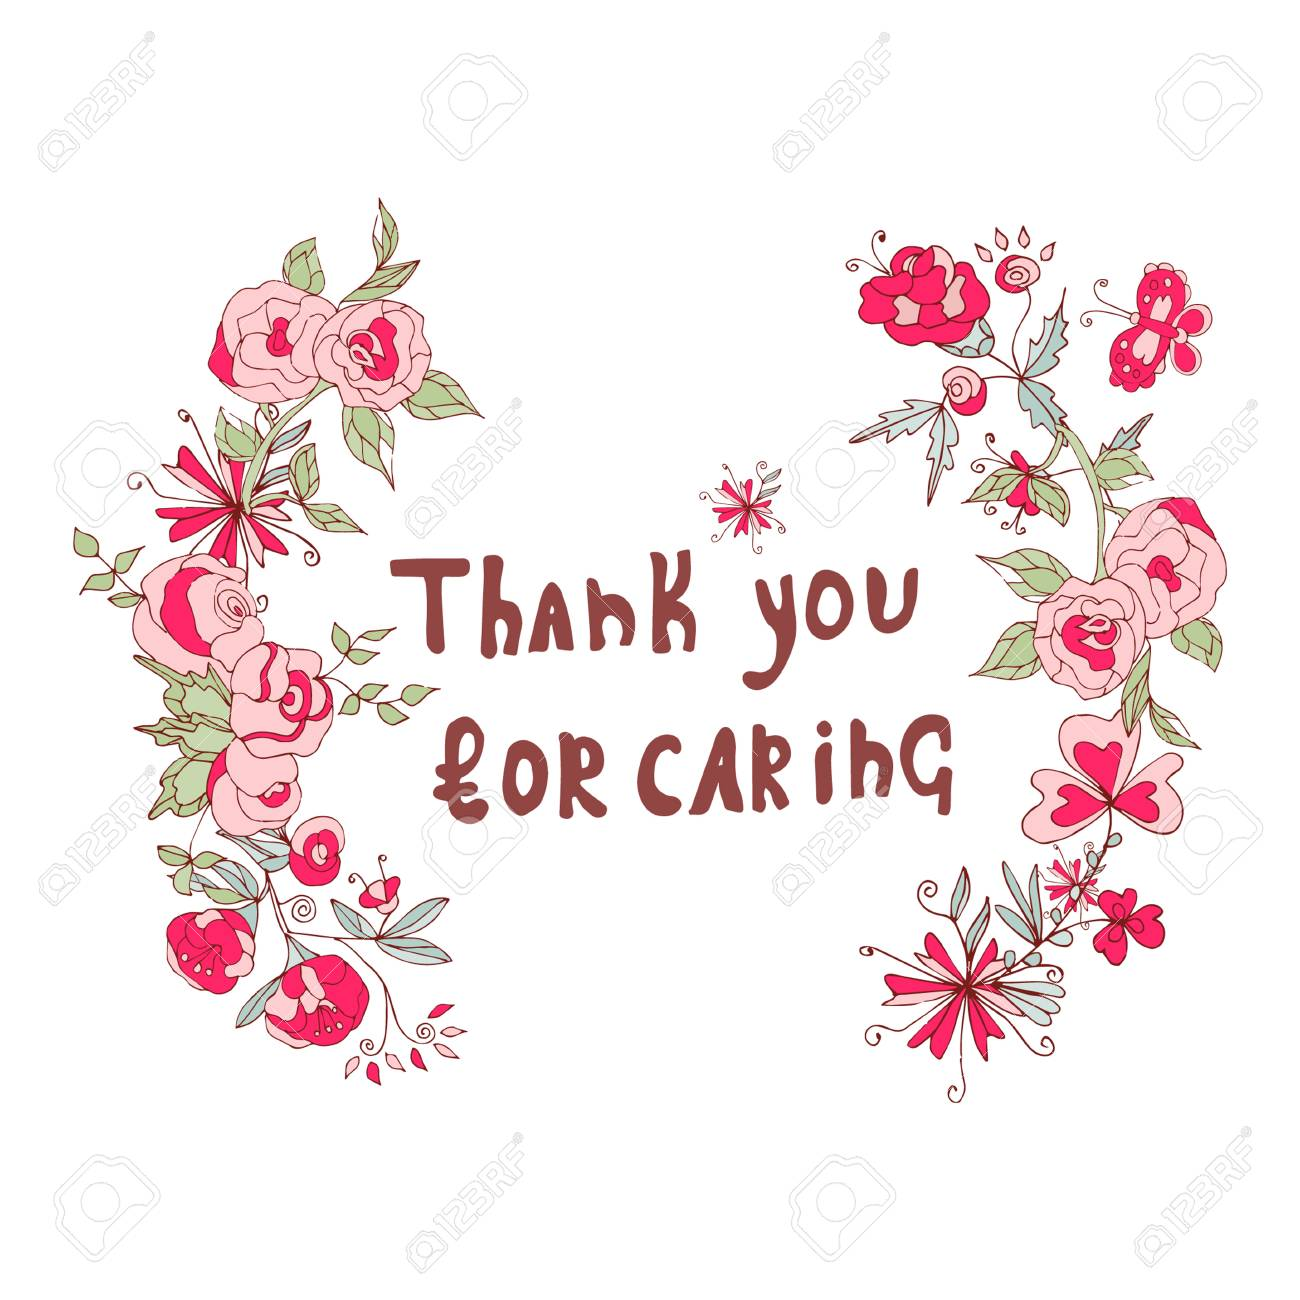 Thank You For Caring Text Citation Frame Of Pink Flowers Sketch